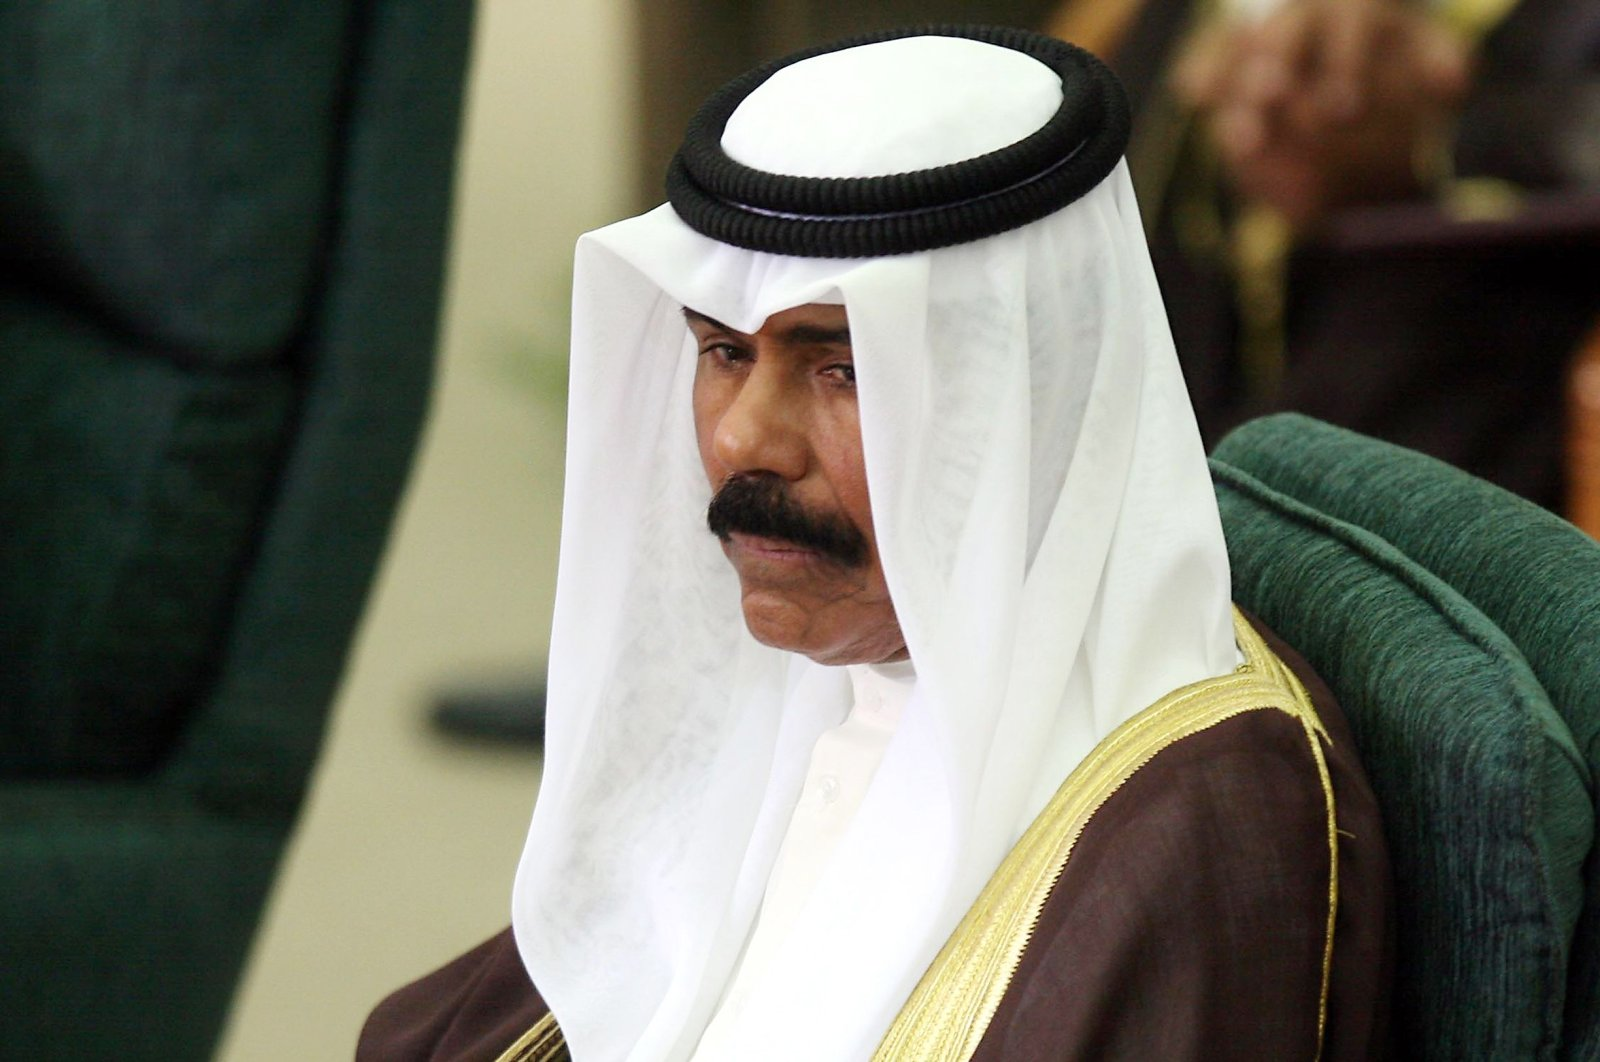 Kuwait's Crown Prince Sheikh Nawaf Al Ahmed Al Sabah attends the inaugural session of the new parliament, Kuwait City, May 31, 2009. (AFP Photo)